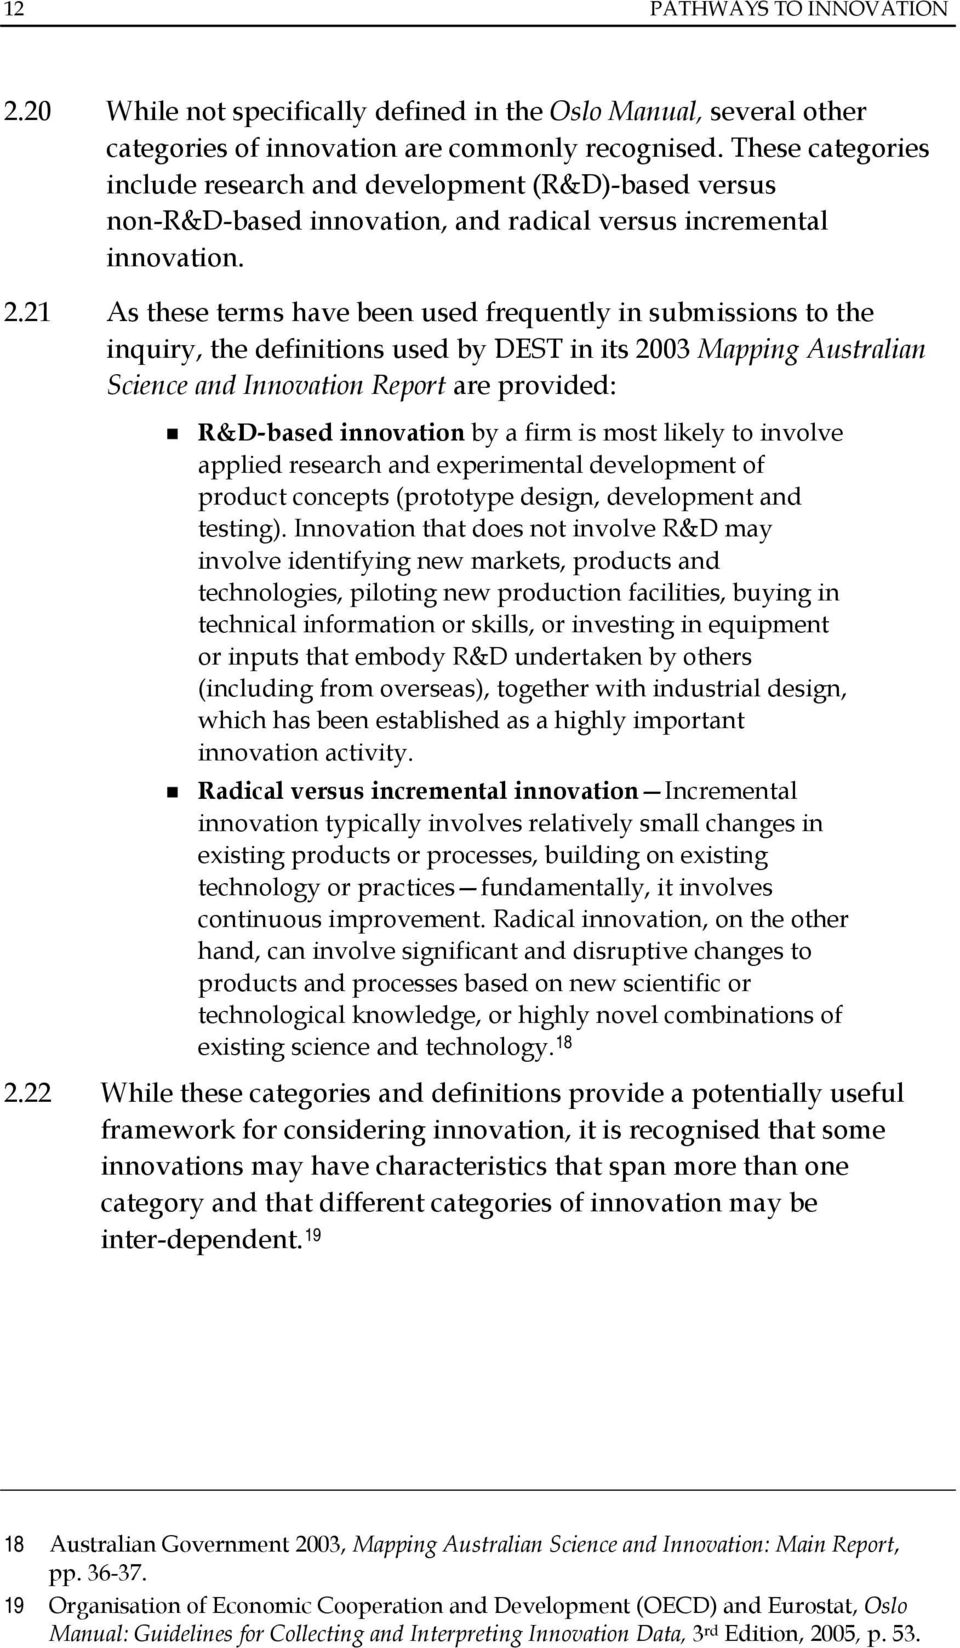 21 As these terms have been used frequently in submissions to the inquiry, the definitions used by DEST in its 2003 Mapping Australian Science and Innovation Report are provided: R&D-based innovation